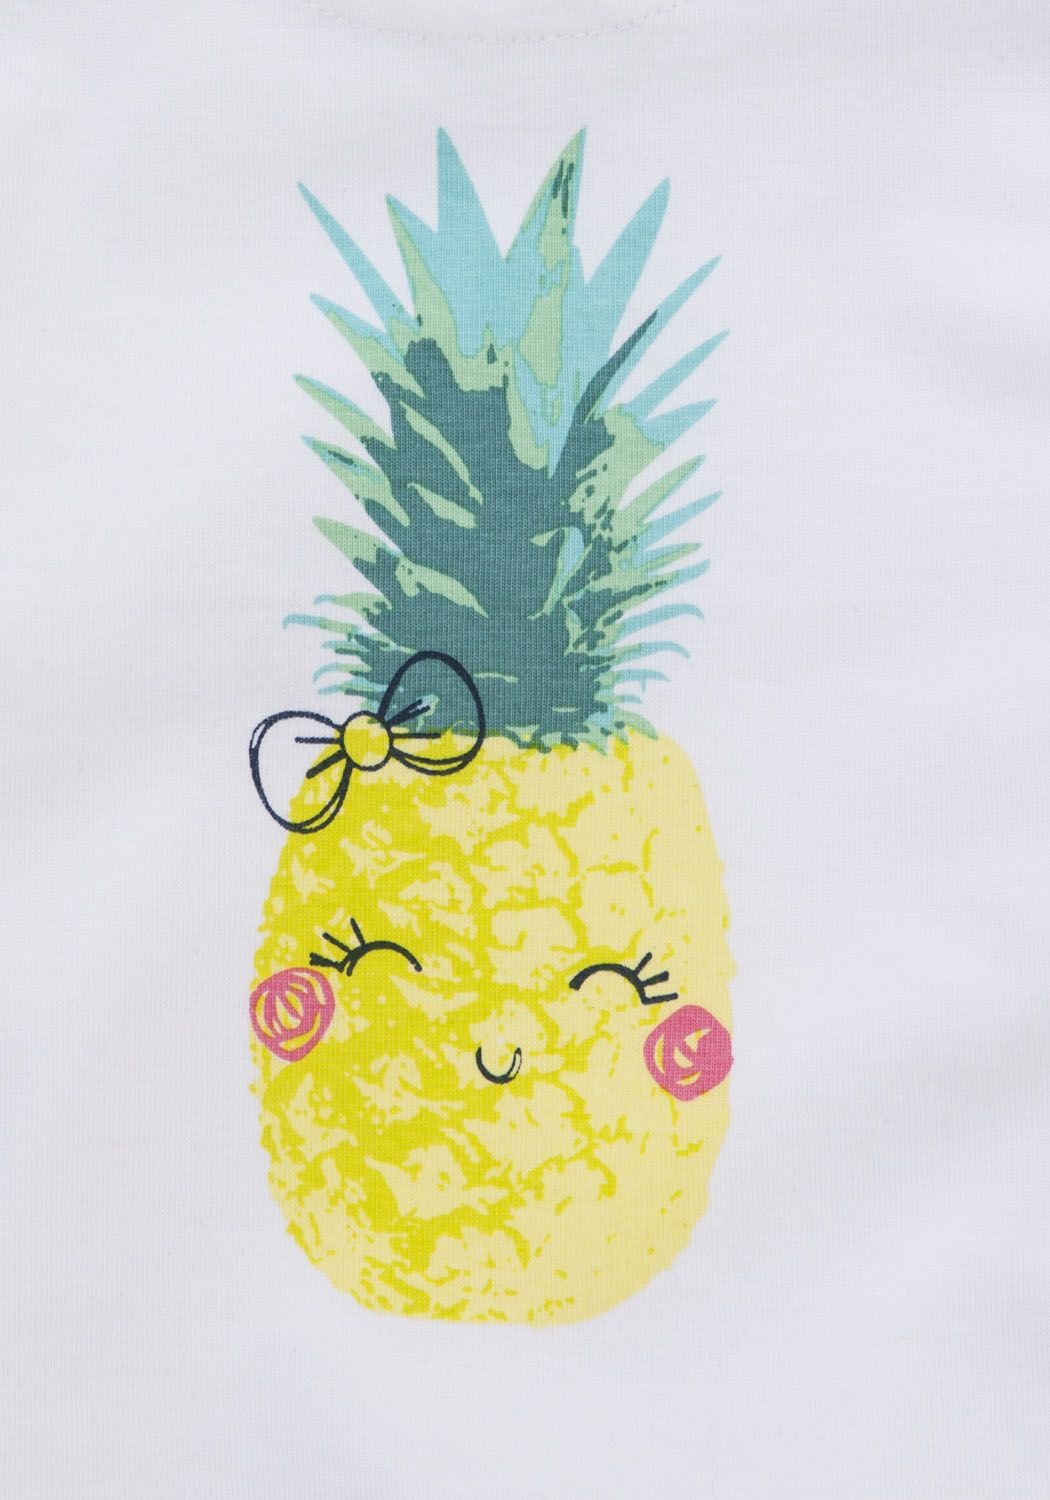 Wallpaper iphone pineapple - Fond Ecran Telephone Iphone Samsung Wallpaper Pineapple